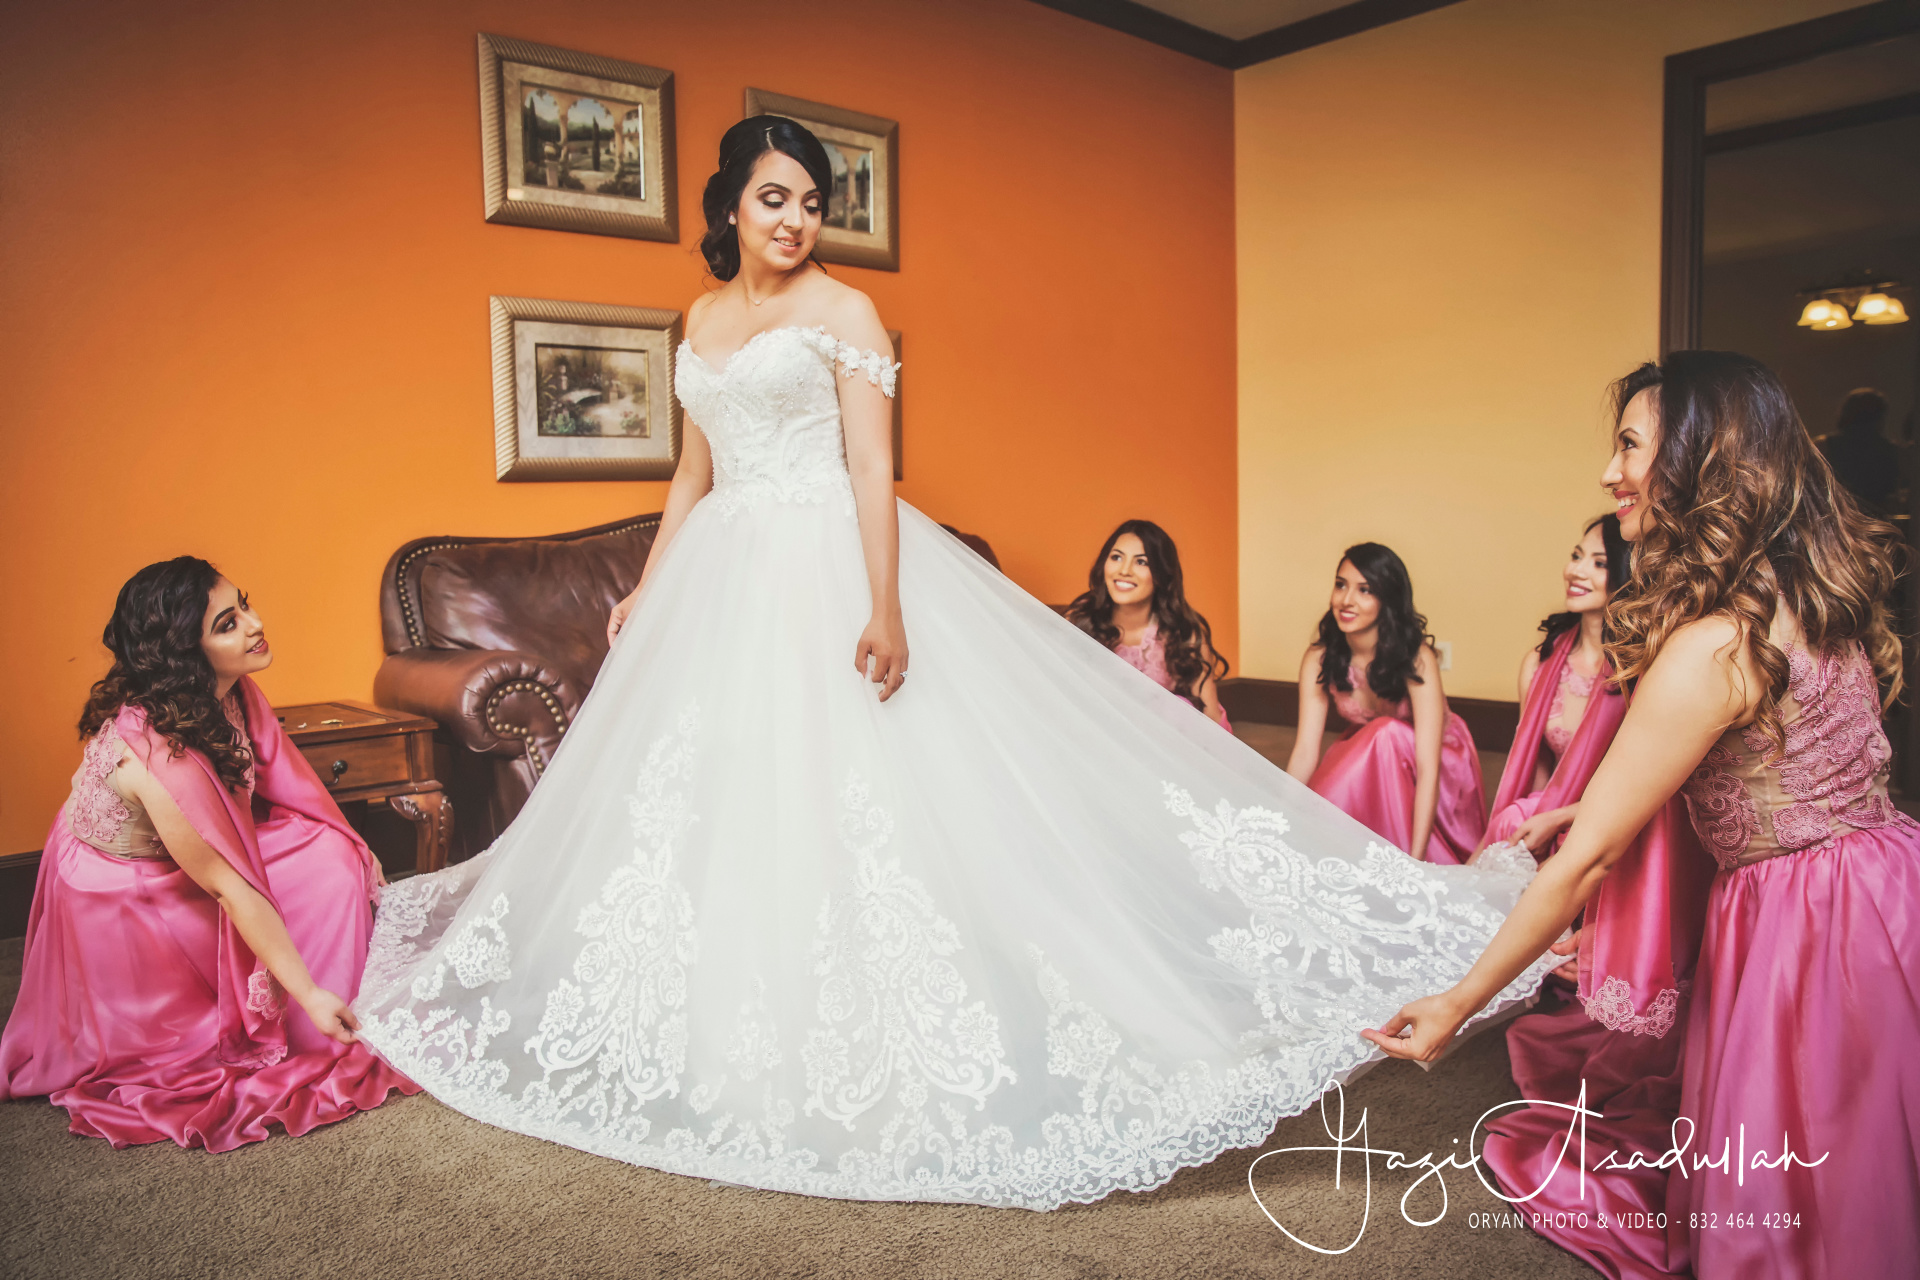 Juan-Maricela Wedding